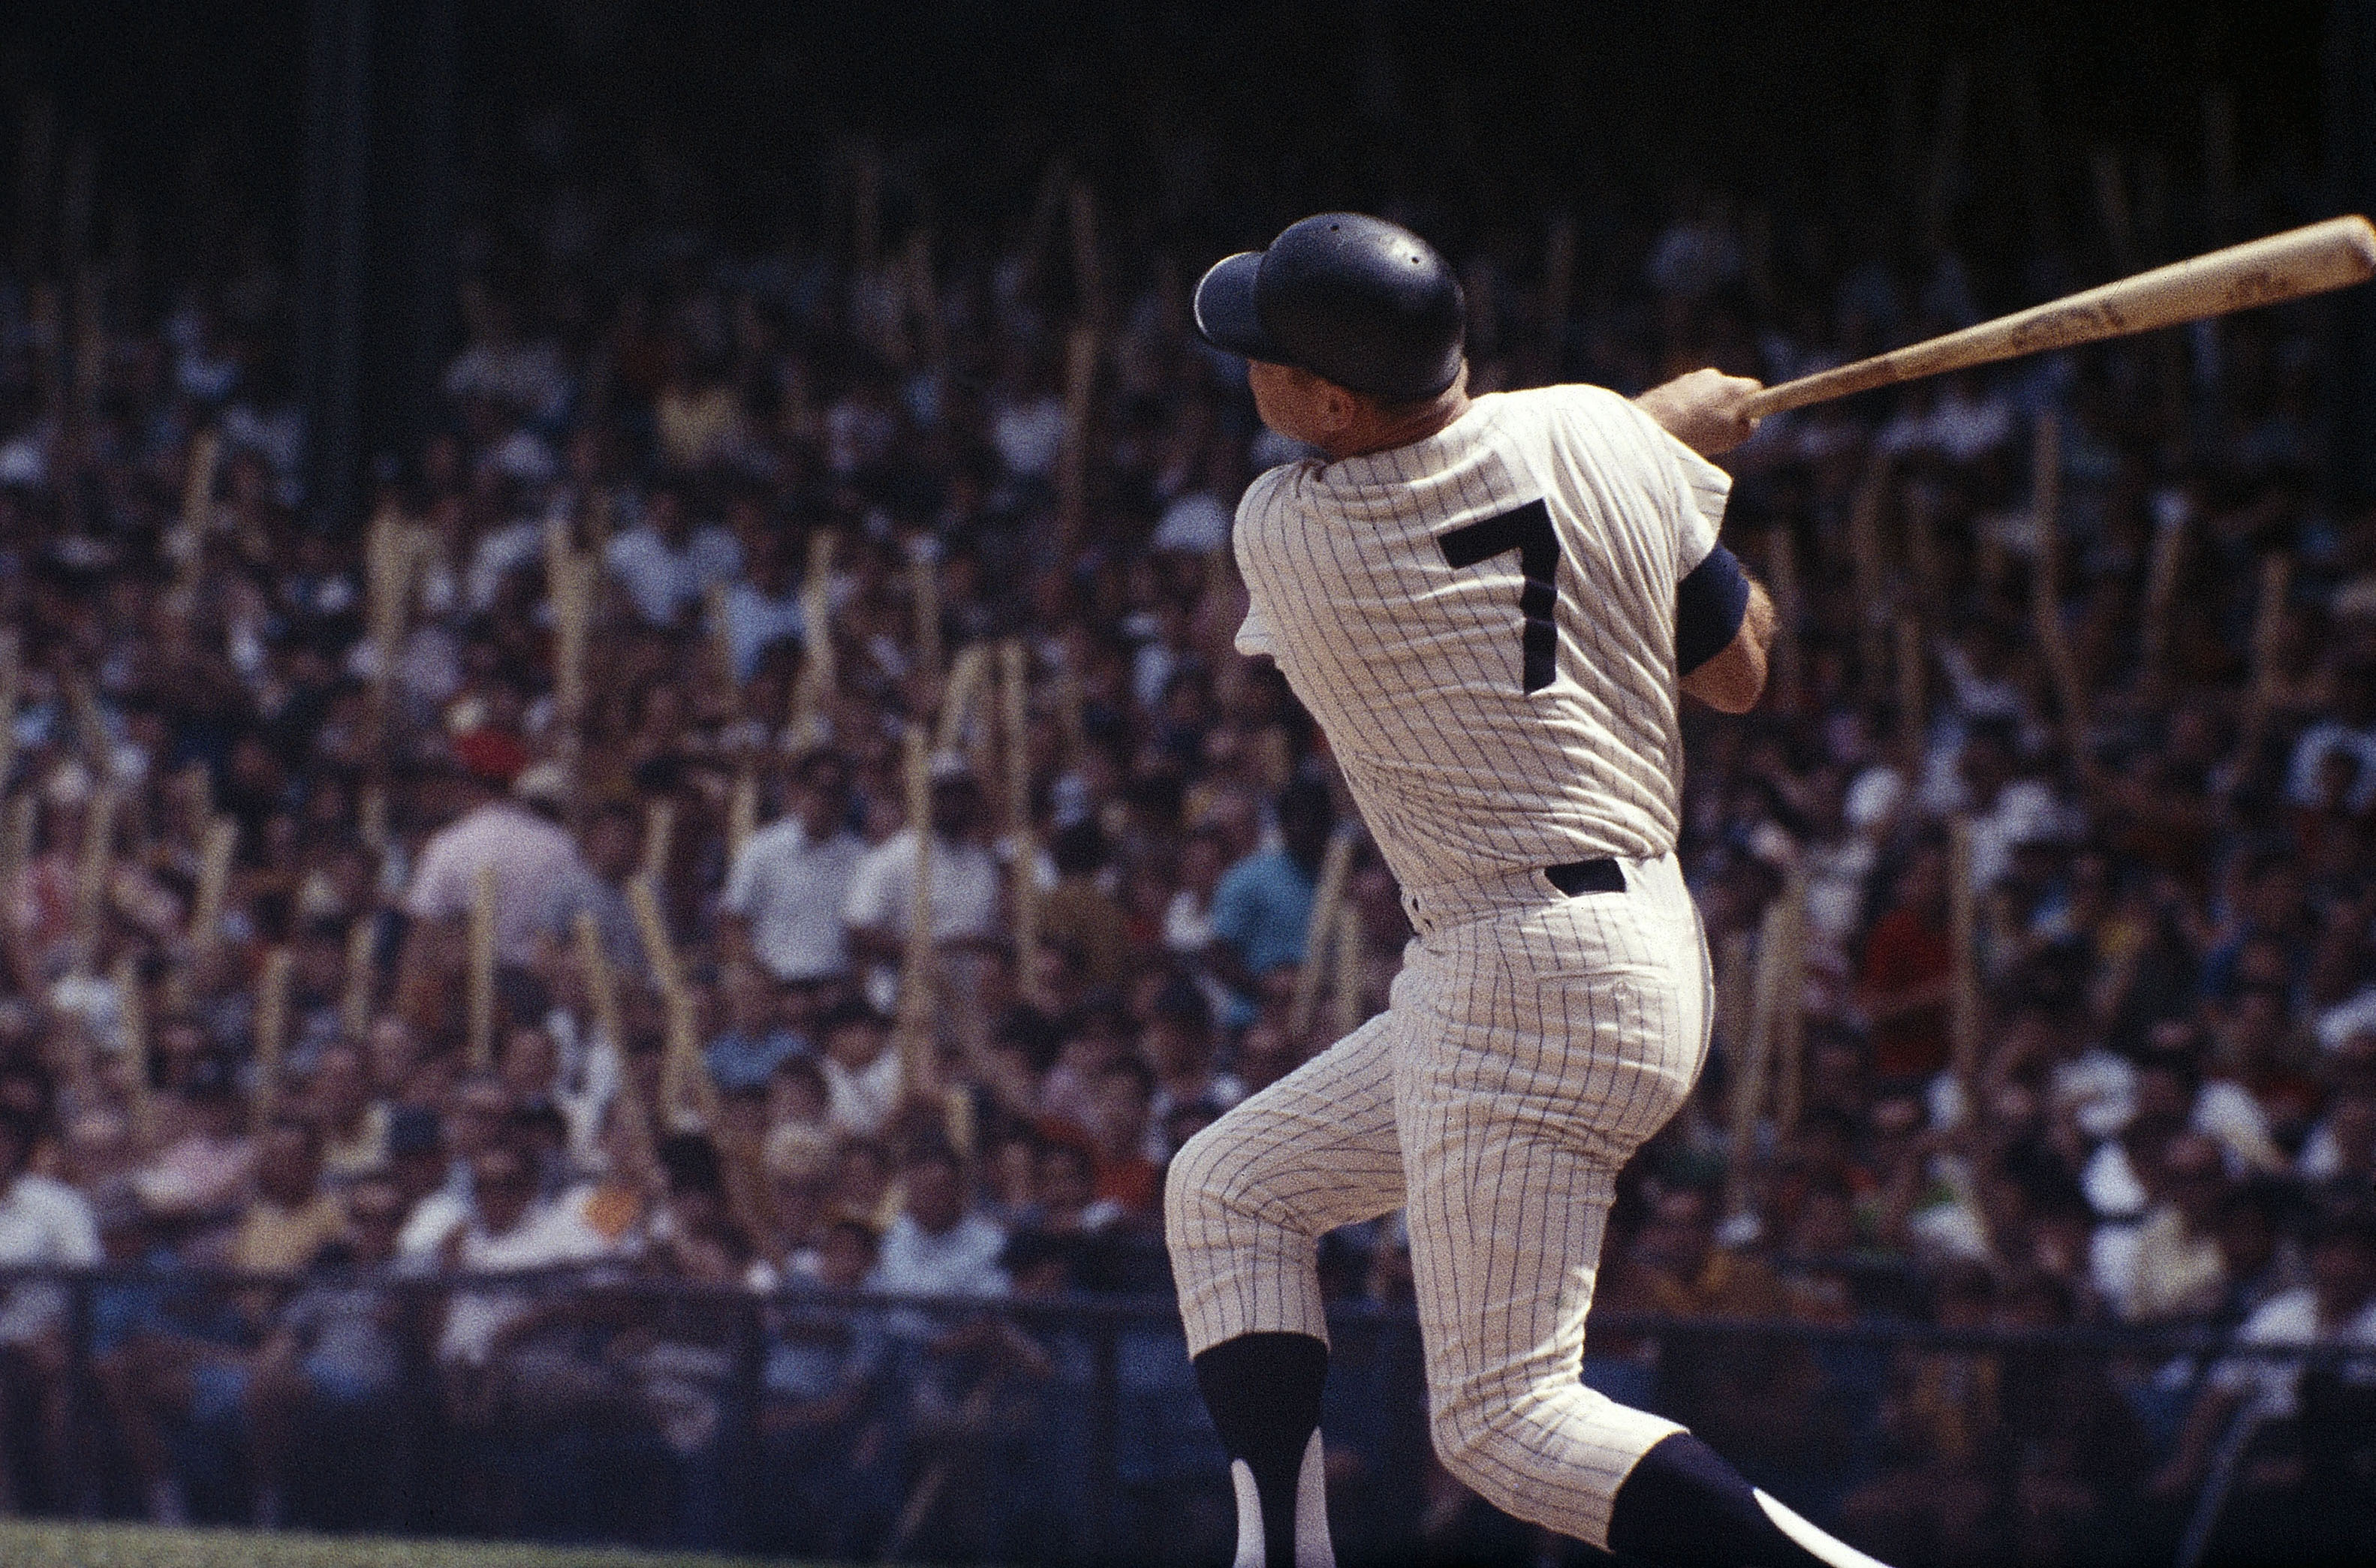 a literary analysis and a review of mickey mantle Introductory works readers new to the subject will quickly gain a sense of the themes and trajectory of renaissance literary criticism from wimsatt and brooks 1957.